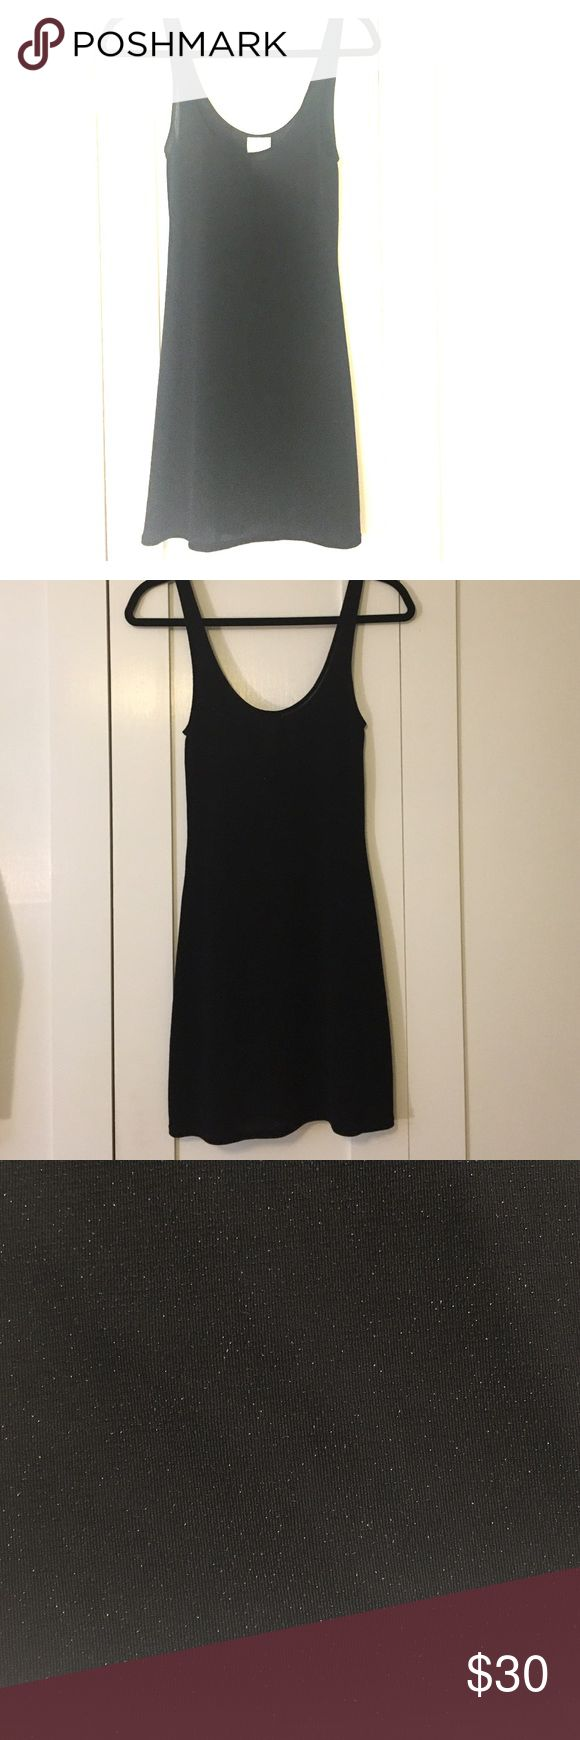 Free People black mini dress Form fitting nylon/metallic mini dress. Slip underneath recommended. Every woman should have at least one little black dress in their arsenal! Free People Dresses Mini